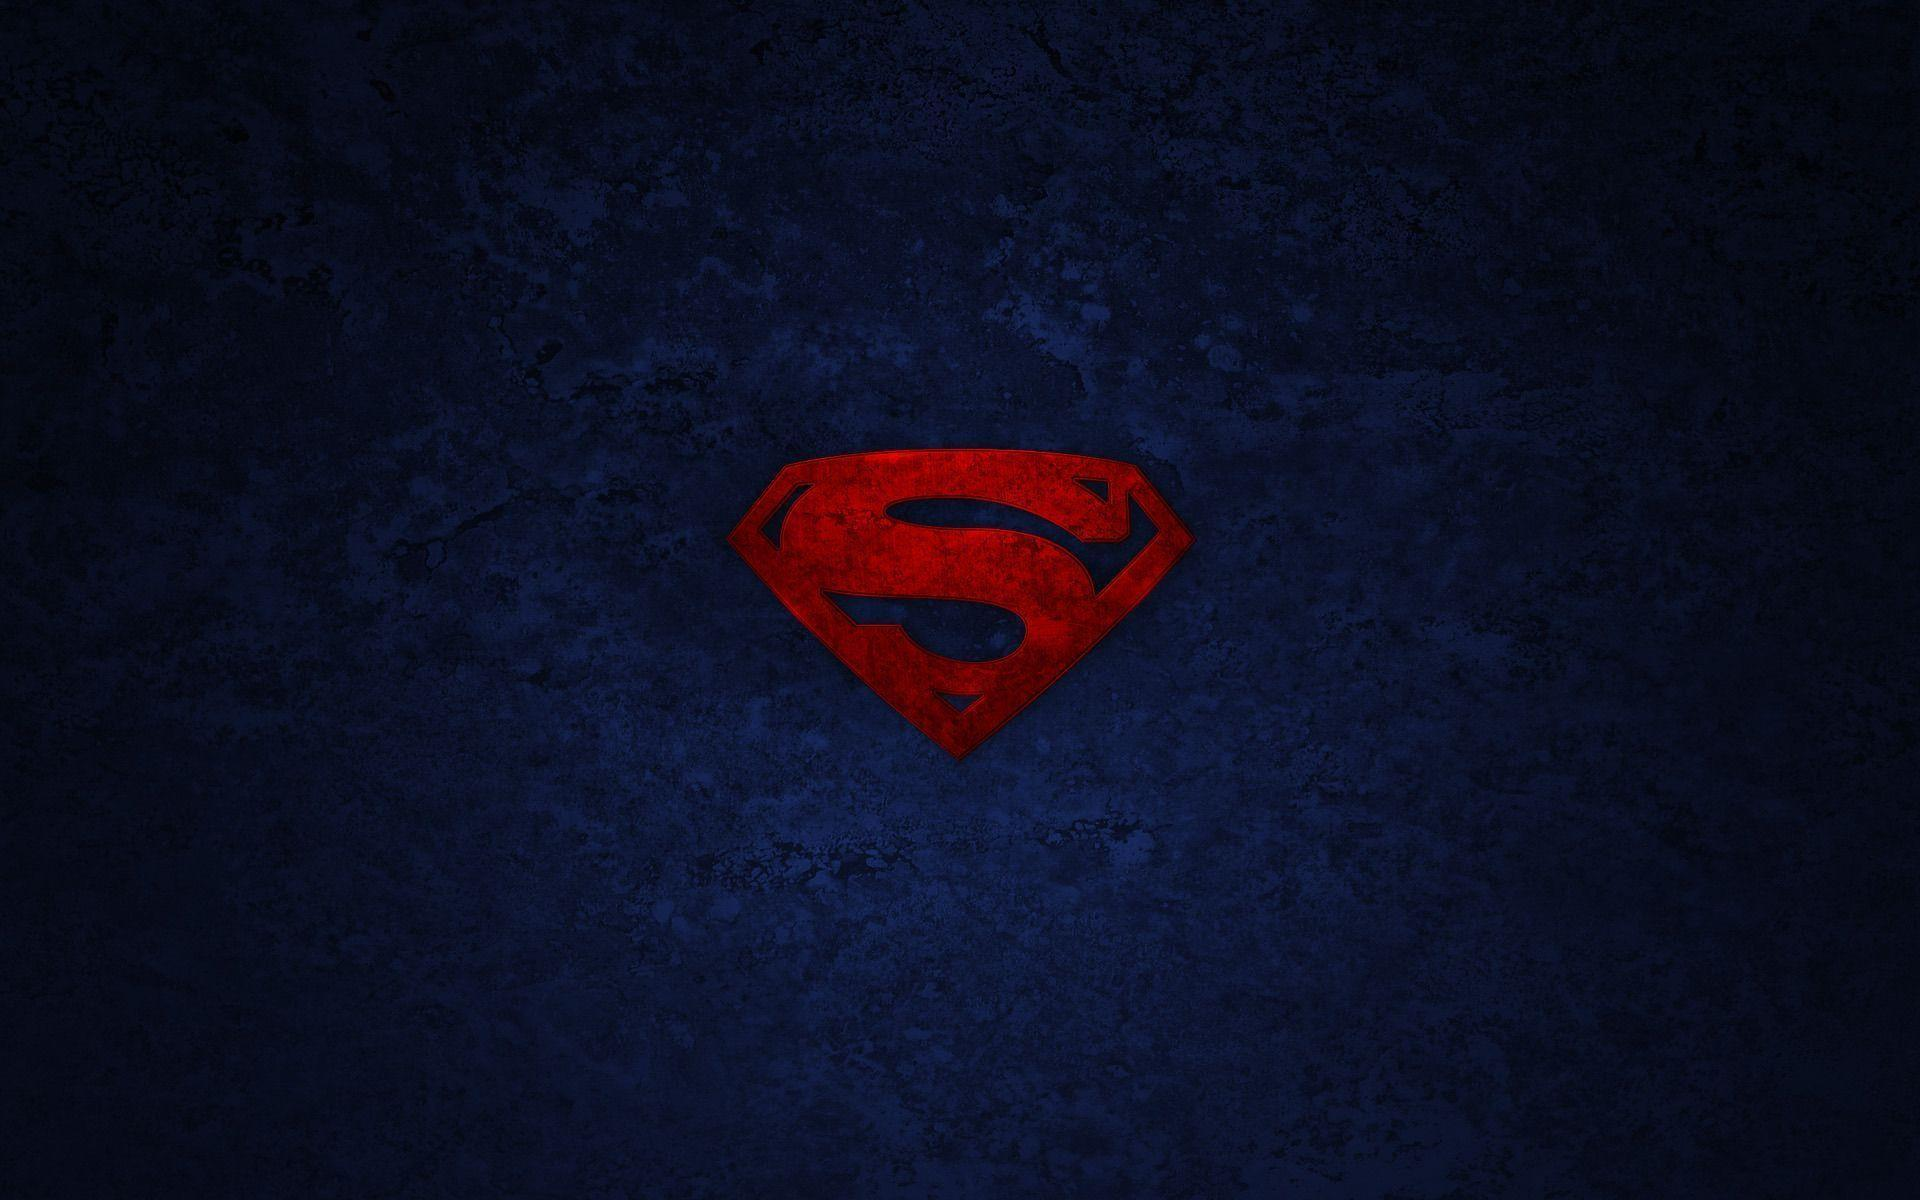 Wallpaper superman, logo wallpapers miscellanea - download